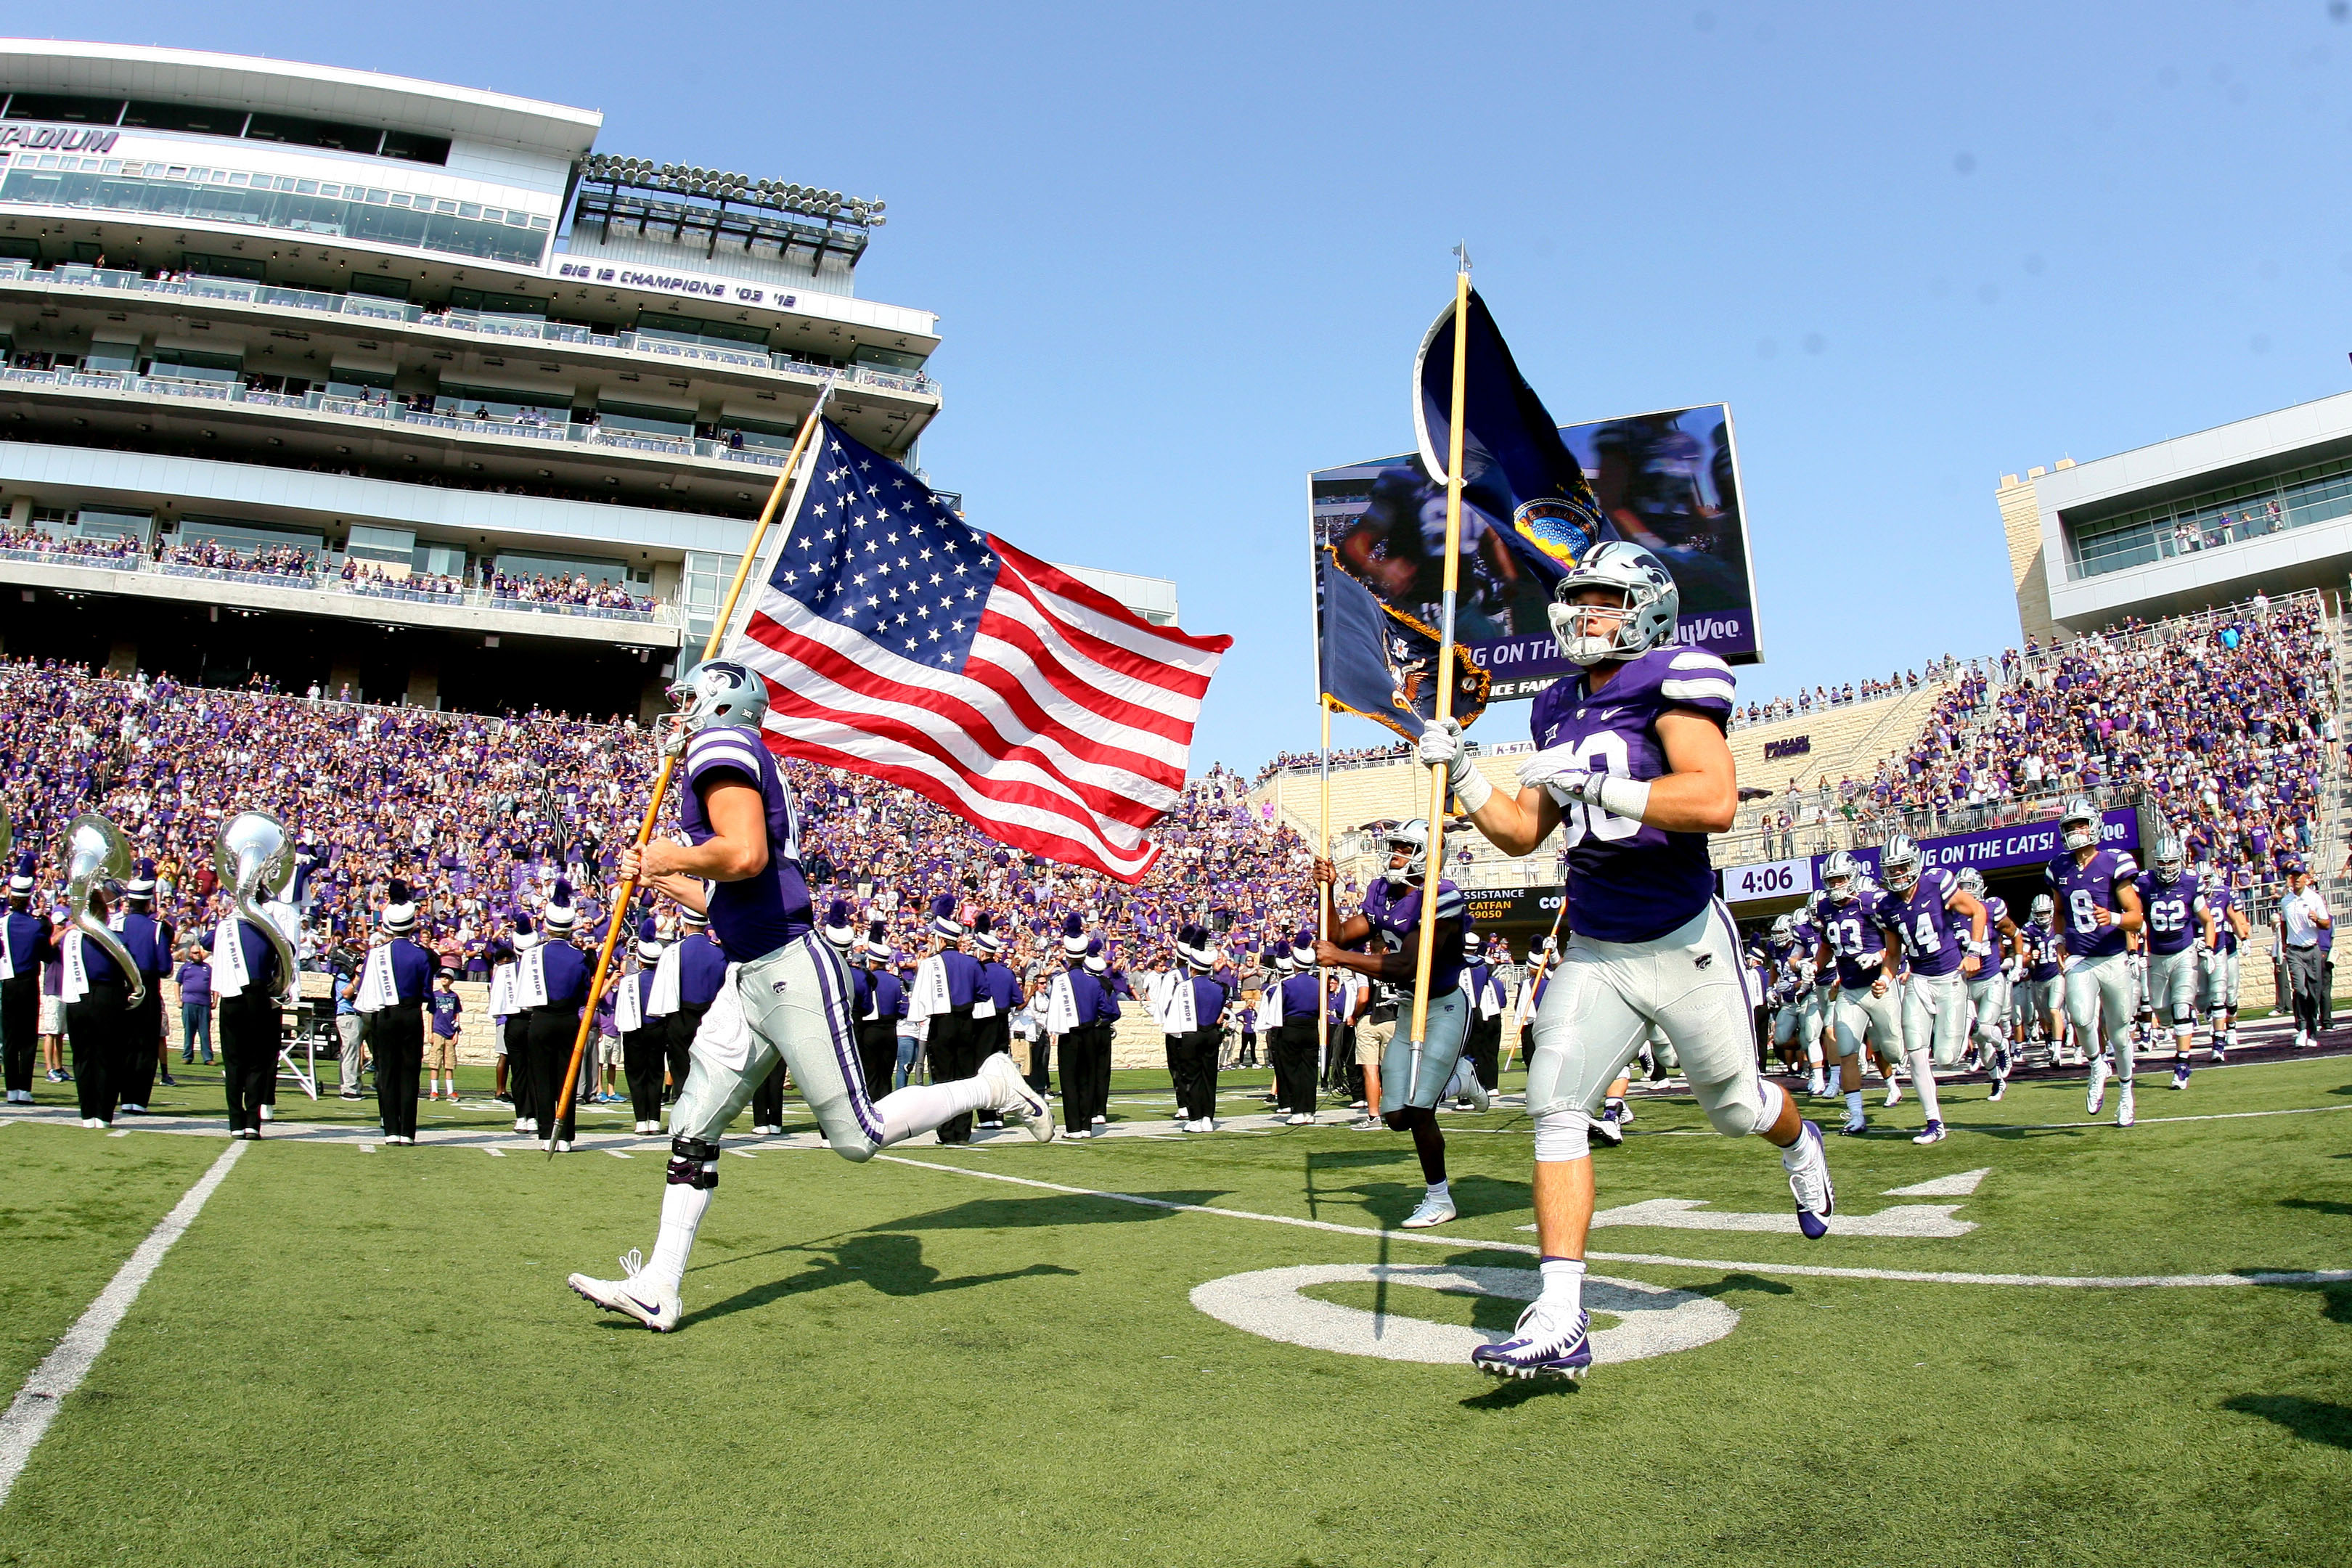 Sep 9, 2017; Manhattan, KS, USA; Kansas State Wildcats quarterback Jesse Ertz (16) and linebacker Trent Tanking (58) carry flags as they lead the Wildcats onto the field before the start of a game against the Charlotte 49ers at Bill Snyder Family Stadium. The Wildcats won 55-7. Mandatory Credit: Scott Sewell-USA TODAY Sports